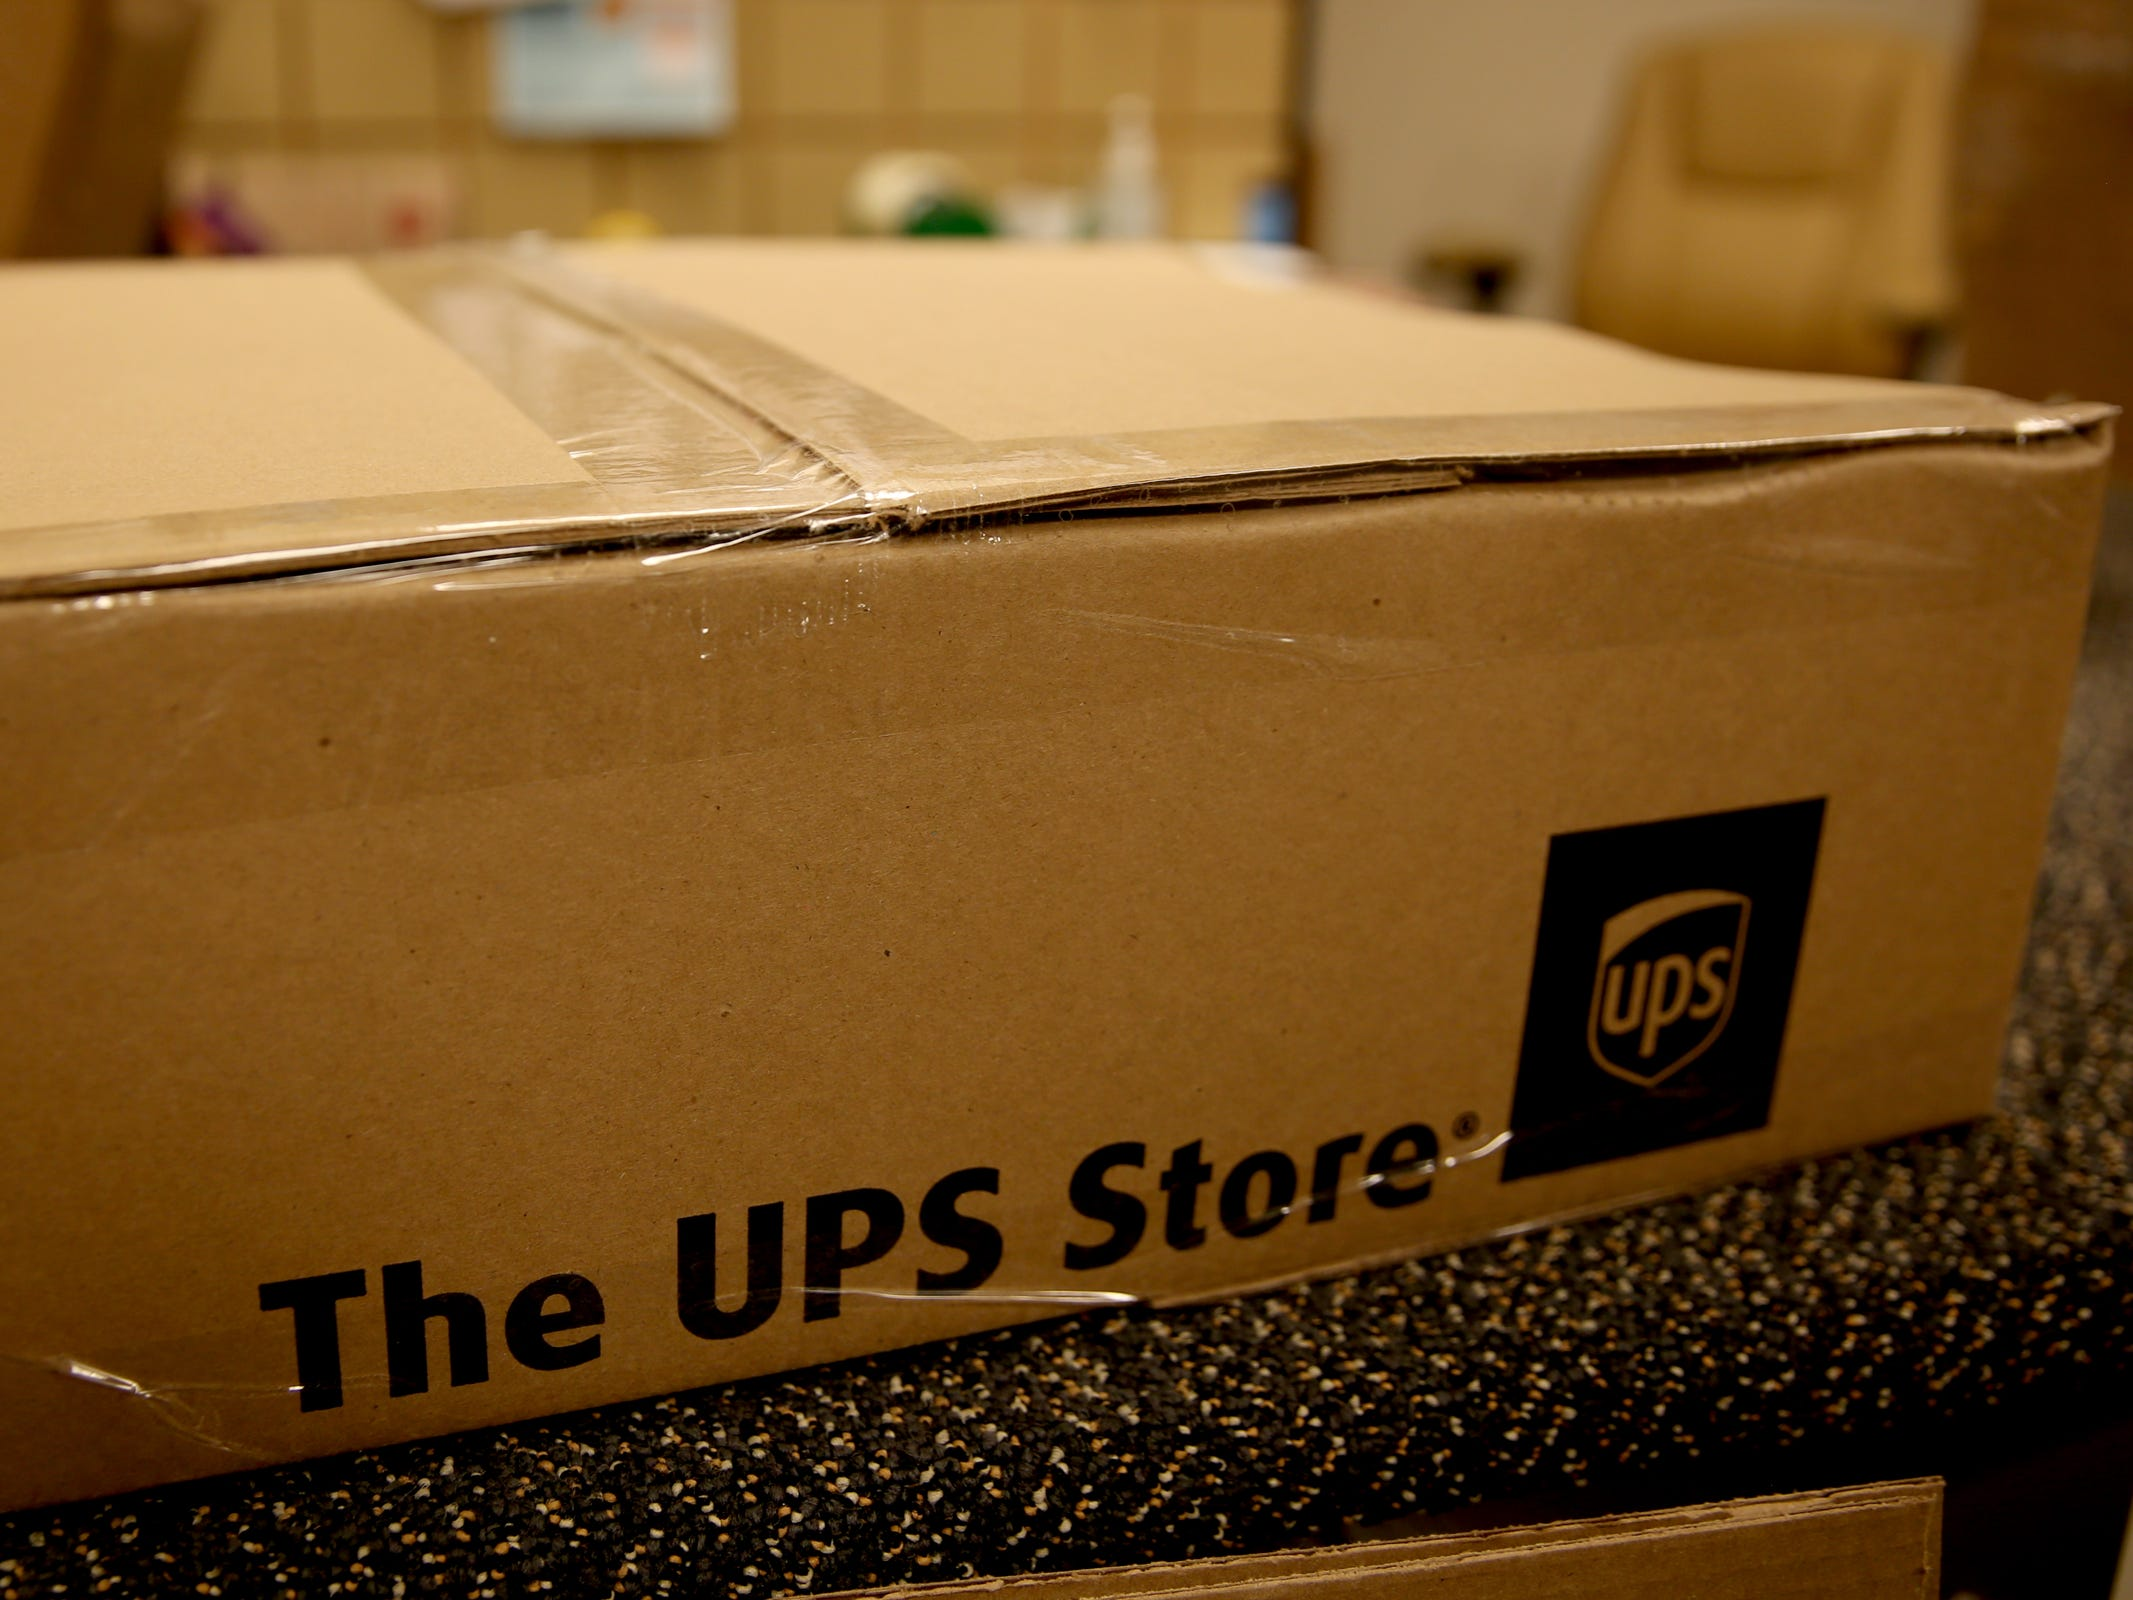 Packages are ready for delivery at the UPS Store on Commercial St. SE in Salem on Tuesday, Dec. 4, 2018.